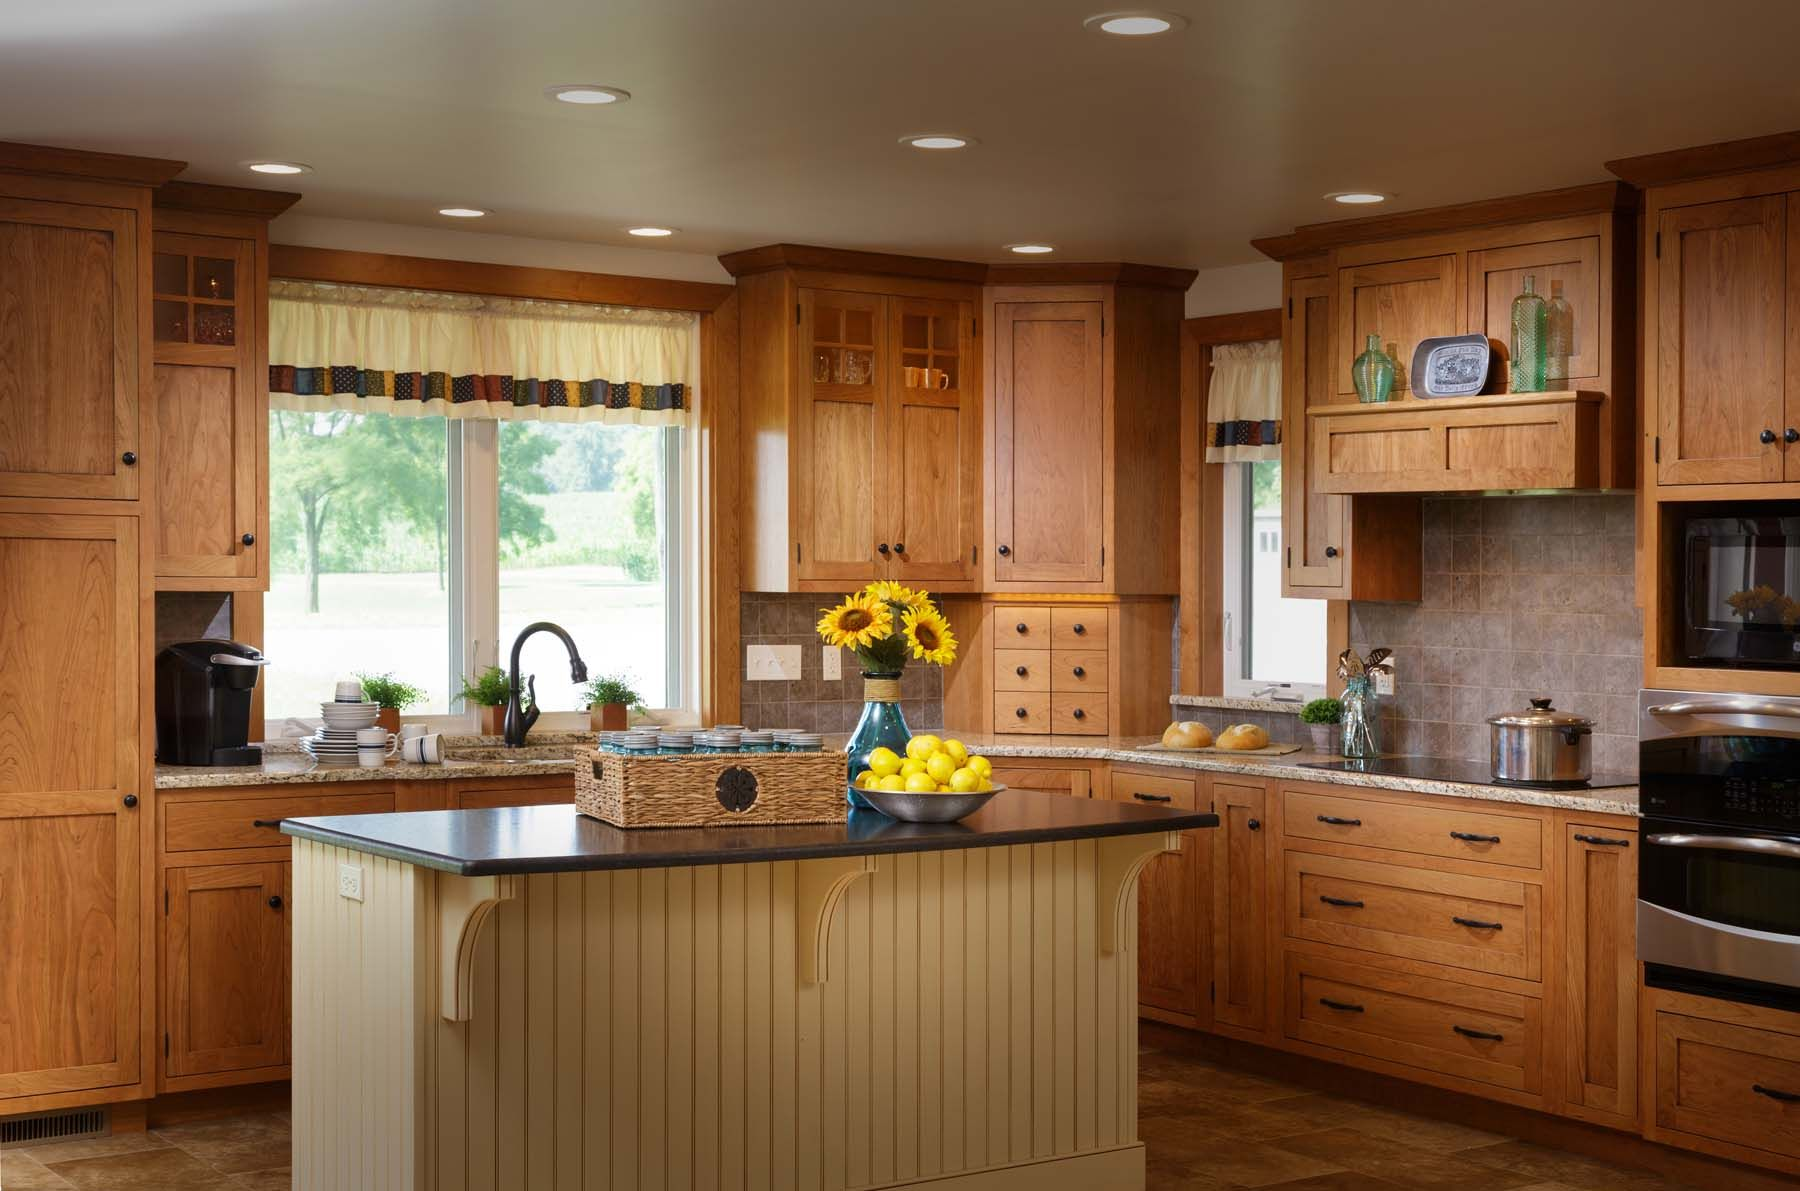 Natural Cherry Flush Inset Cabinetry With A Painted And Glazed Bead Board Island Affordable Kitchen Remodeling Kitchen Remodel Cherry Cabinets Kitchen